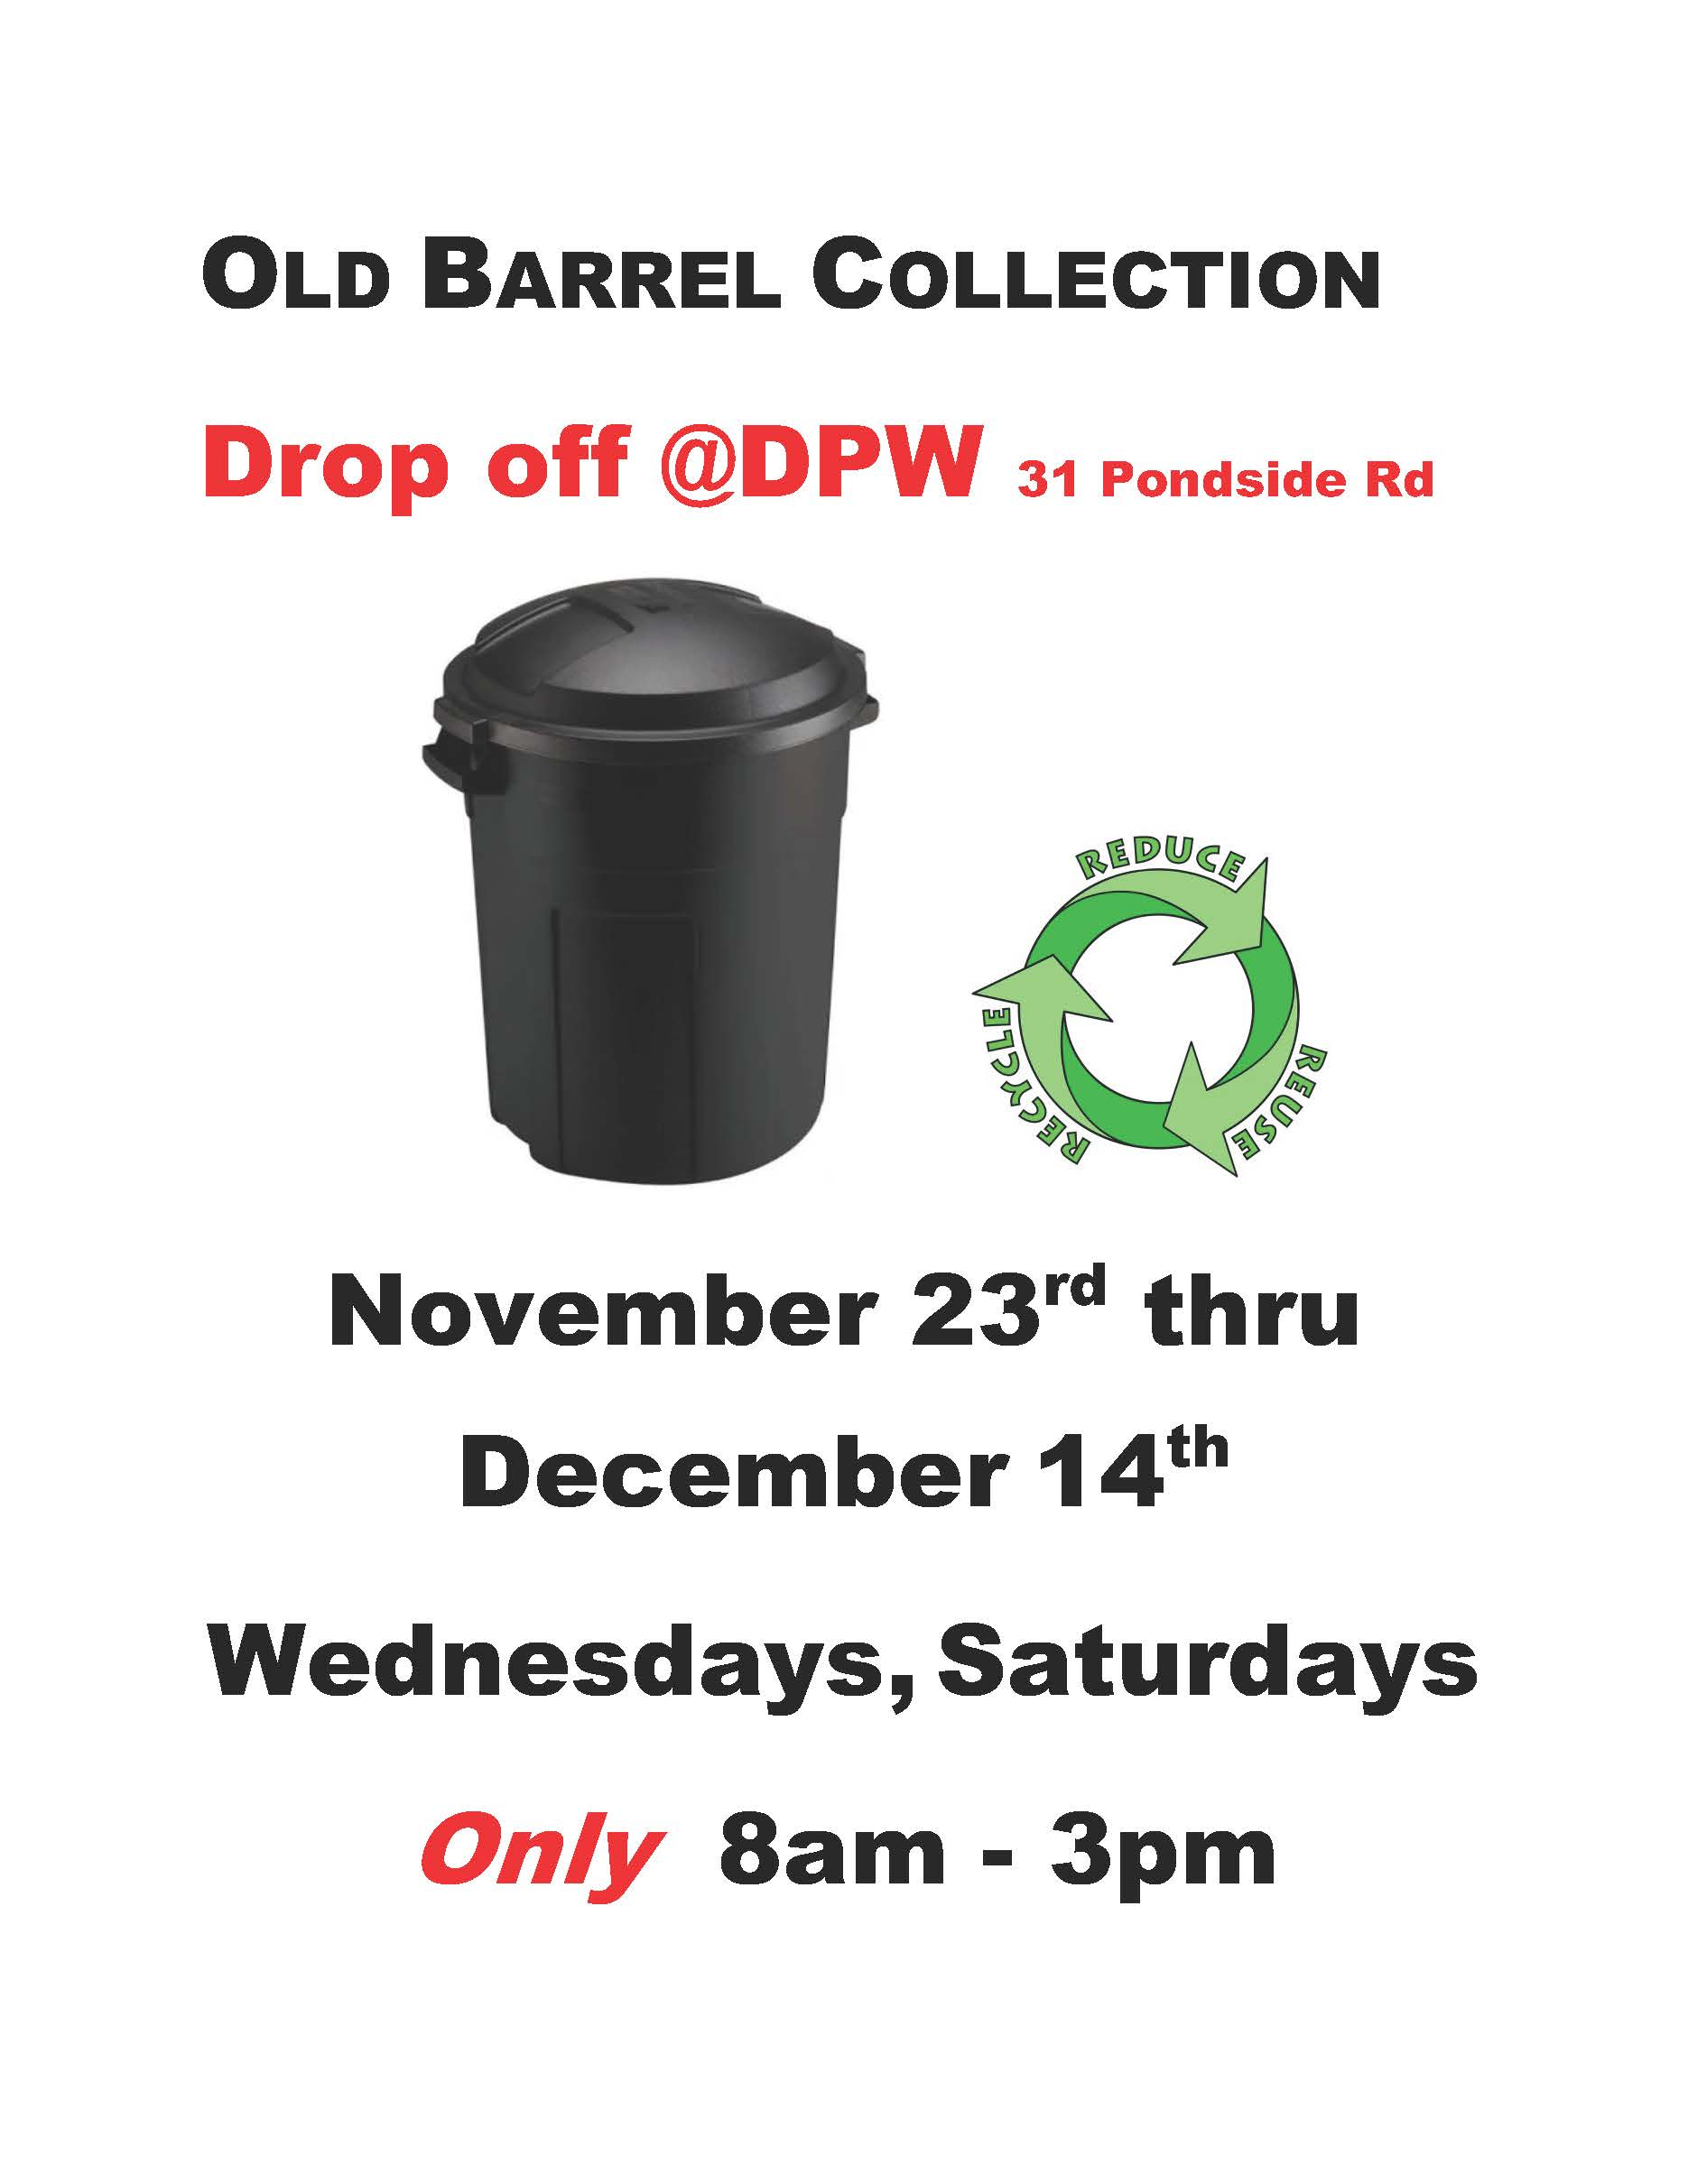 OLD BARREL COLLECTION flyer III